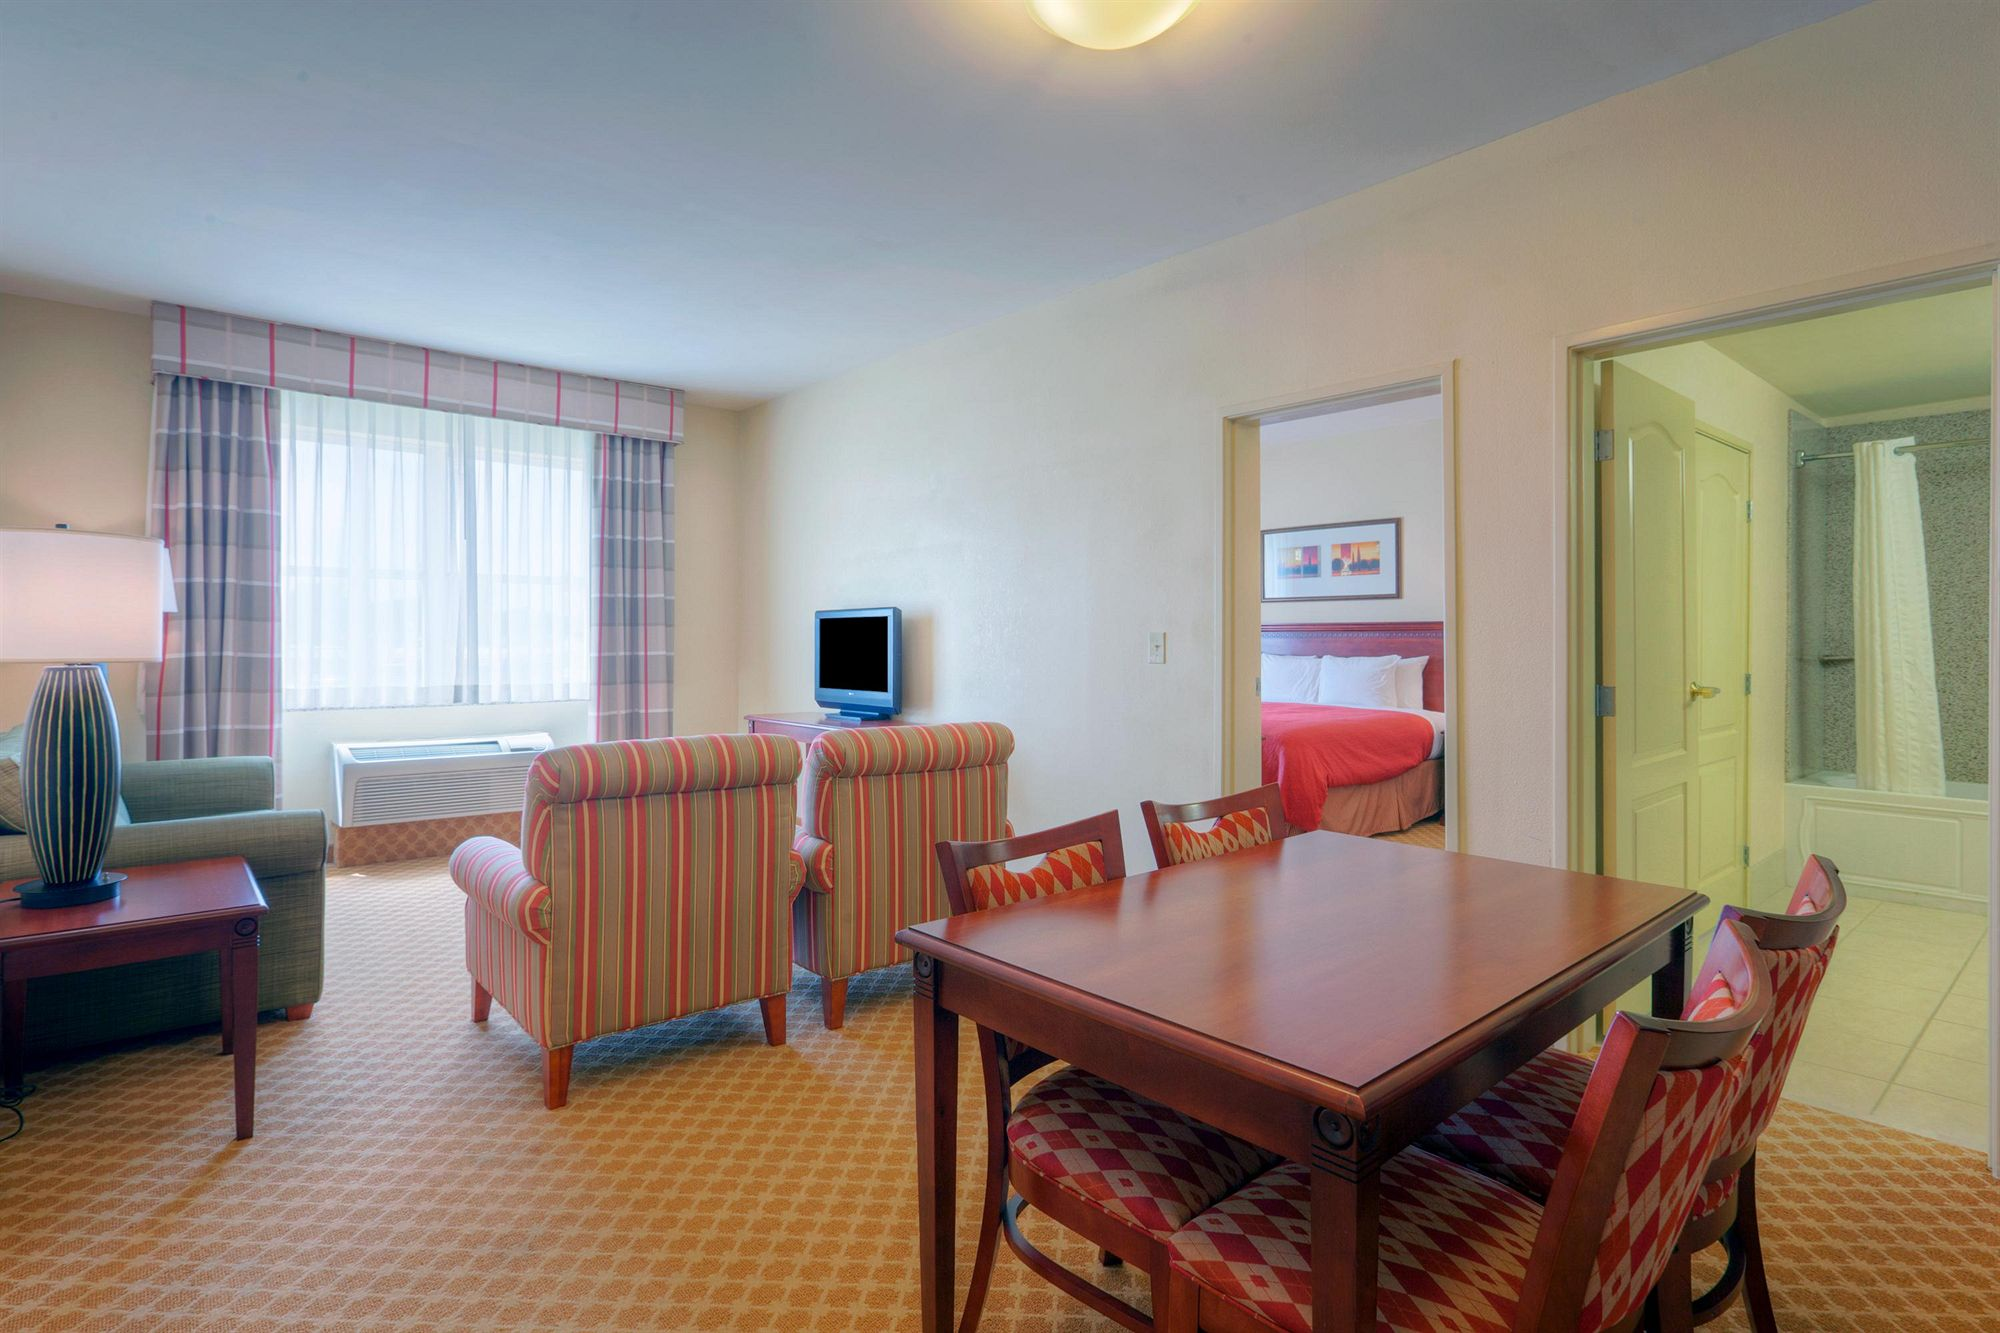 Country Inns & Suites in Emporia, VA